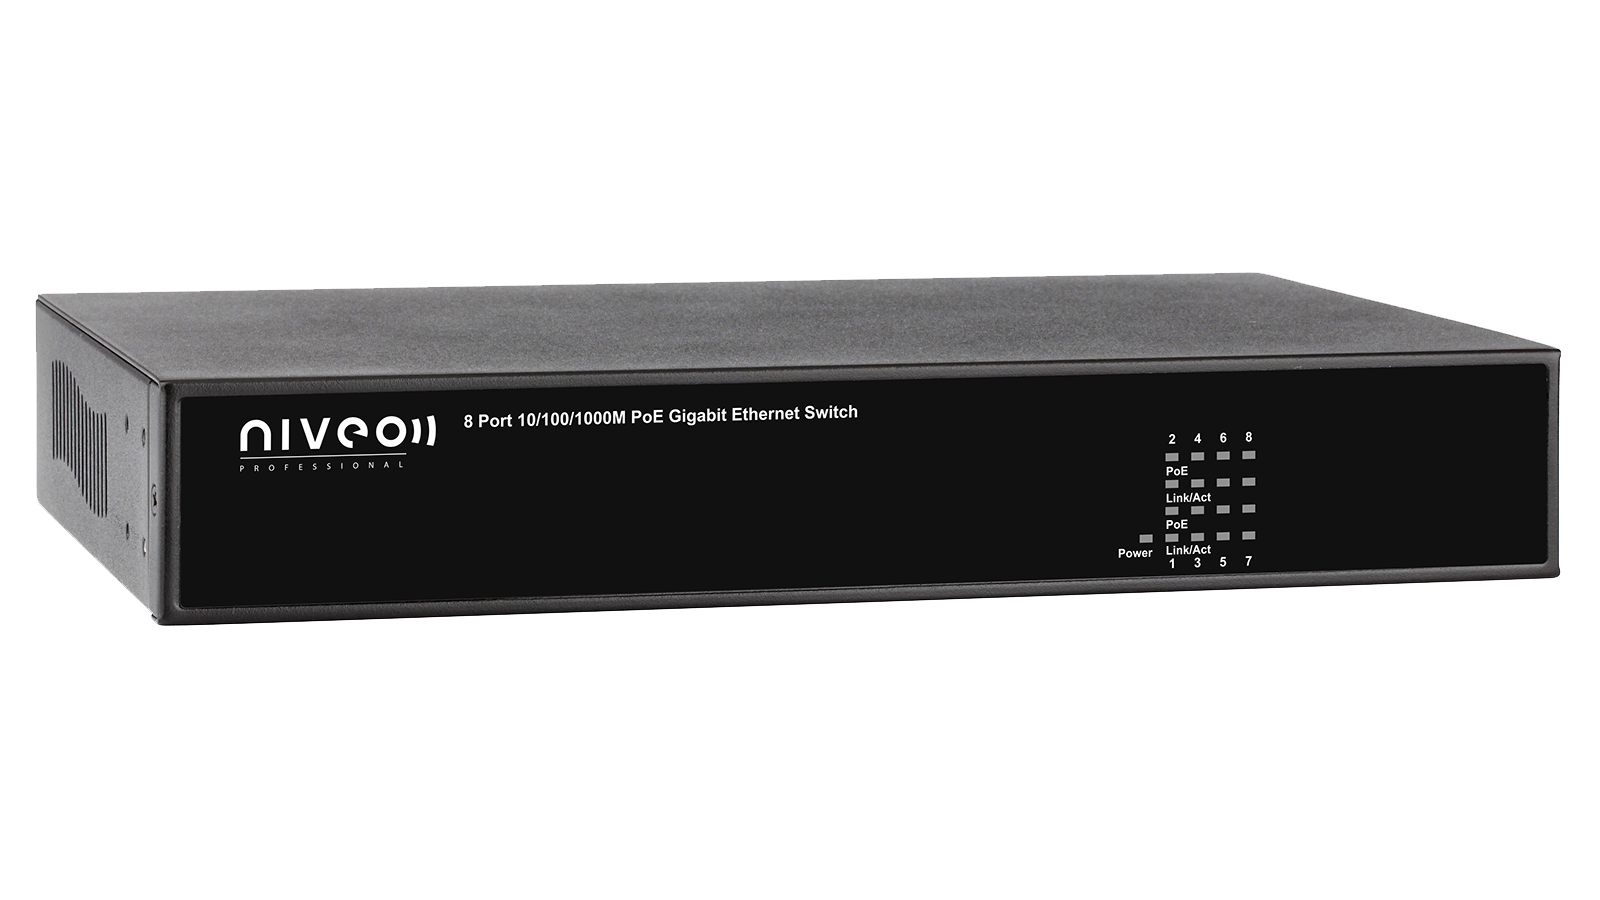 Ngse8h Av Niveo 8 Port Gigabit High Power Poe Rear Facing Switch Thread Tele With 4 Way Alternate Wiring Plz Help